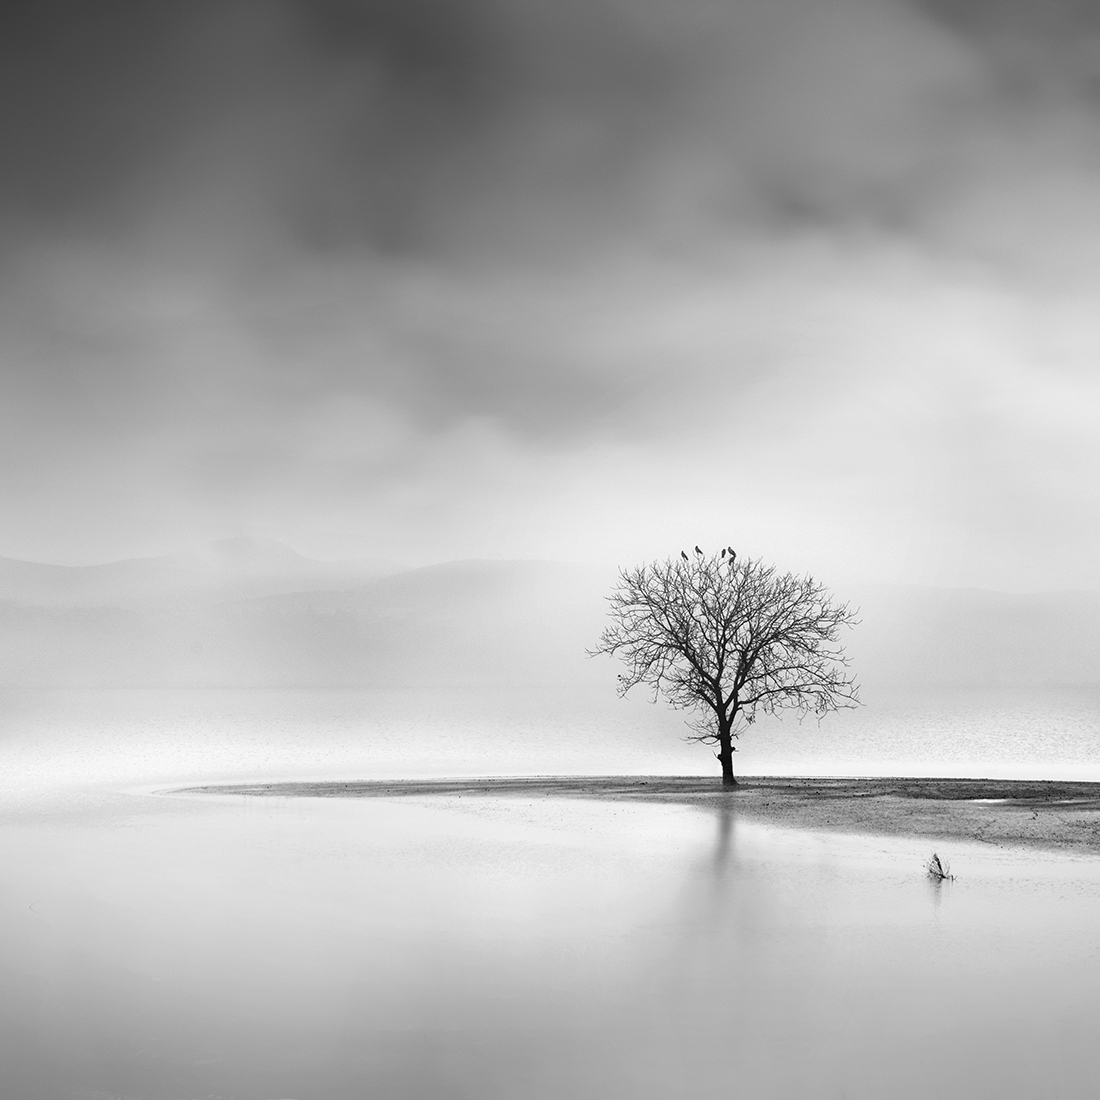 © George Digalakis: Silent Waters / MonoVisions Photography Awards 2018 Honourable Mention